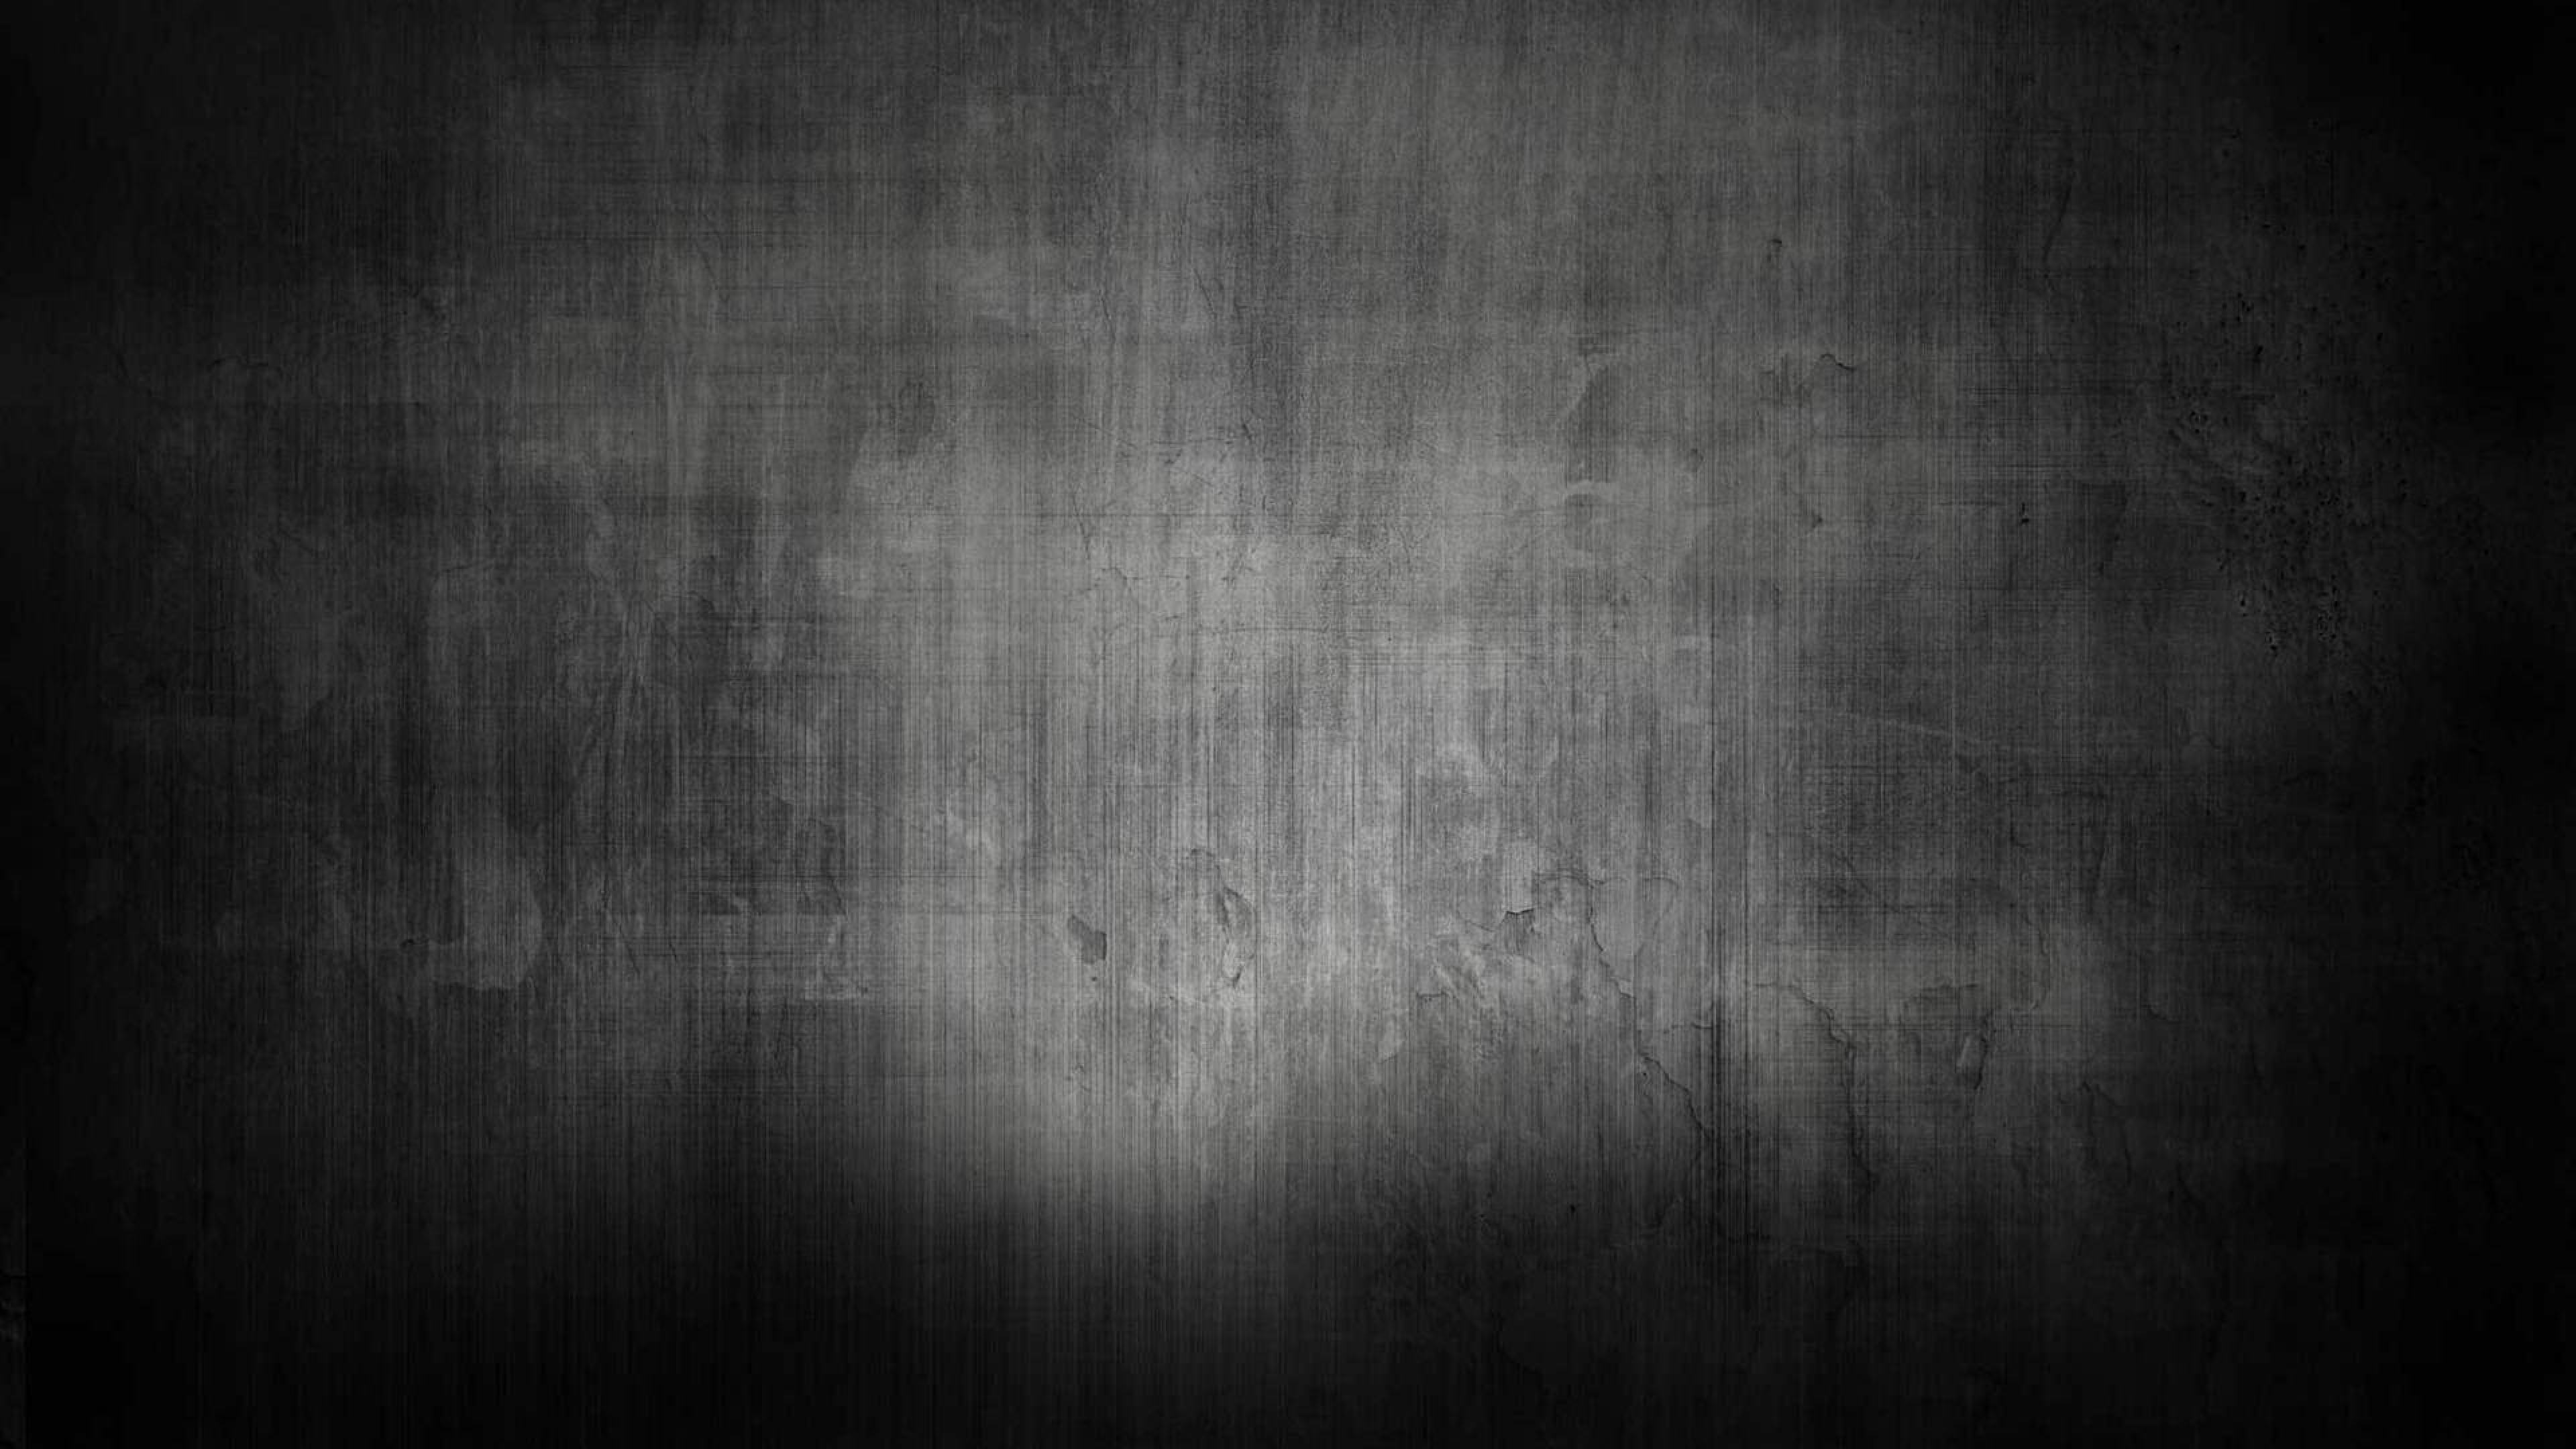 Black-Dark-Spot-White-Texture-Background-Pattern-WallpapersByte-com-3840x2160